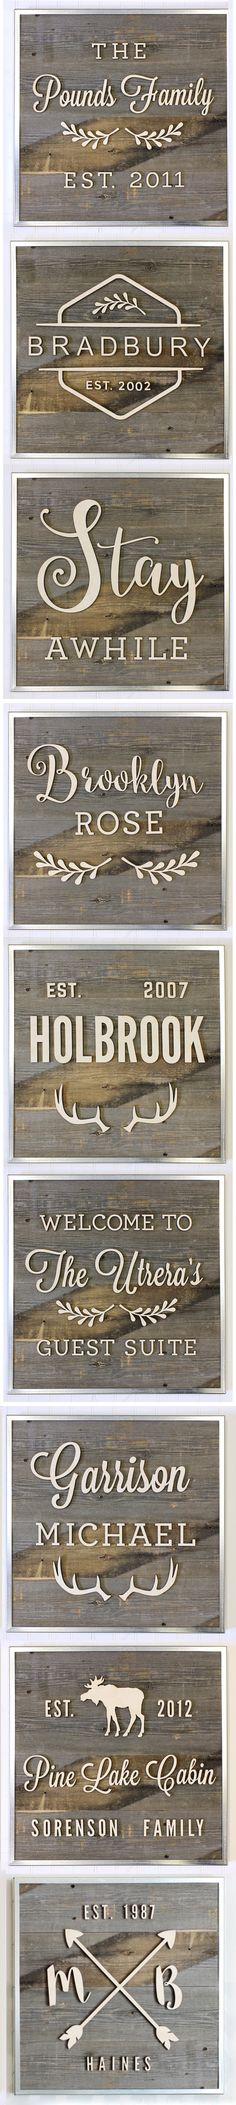 Personalized Reclaimed Wood Signs! Welcome Signs, Anniversary Signs, Wedding Signs, Nursery Signs! CraftCuts.com